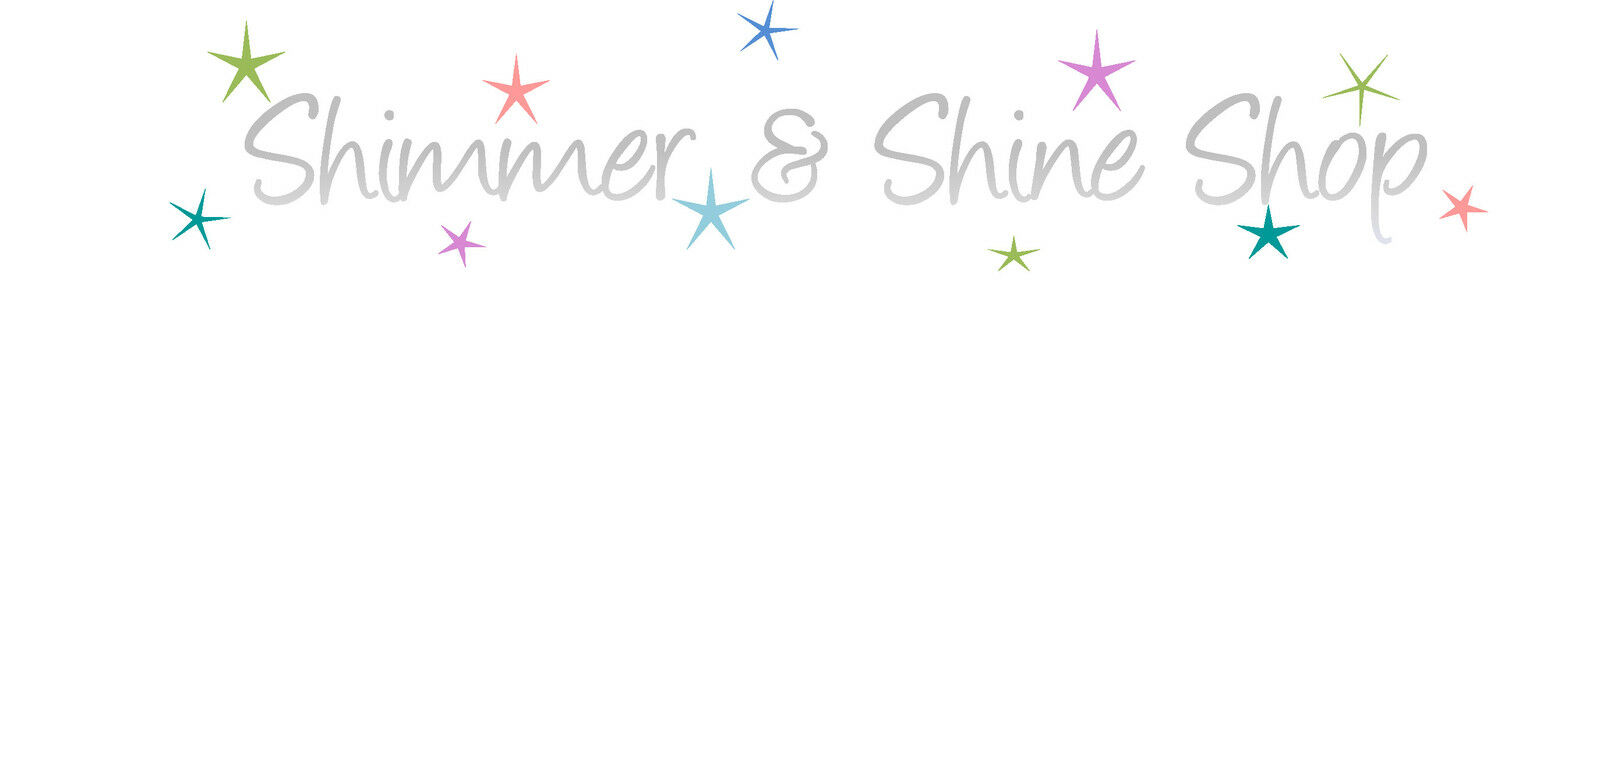 Shimmer and Shine Shop